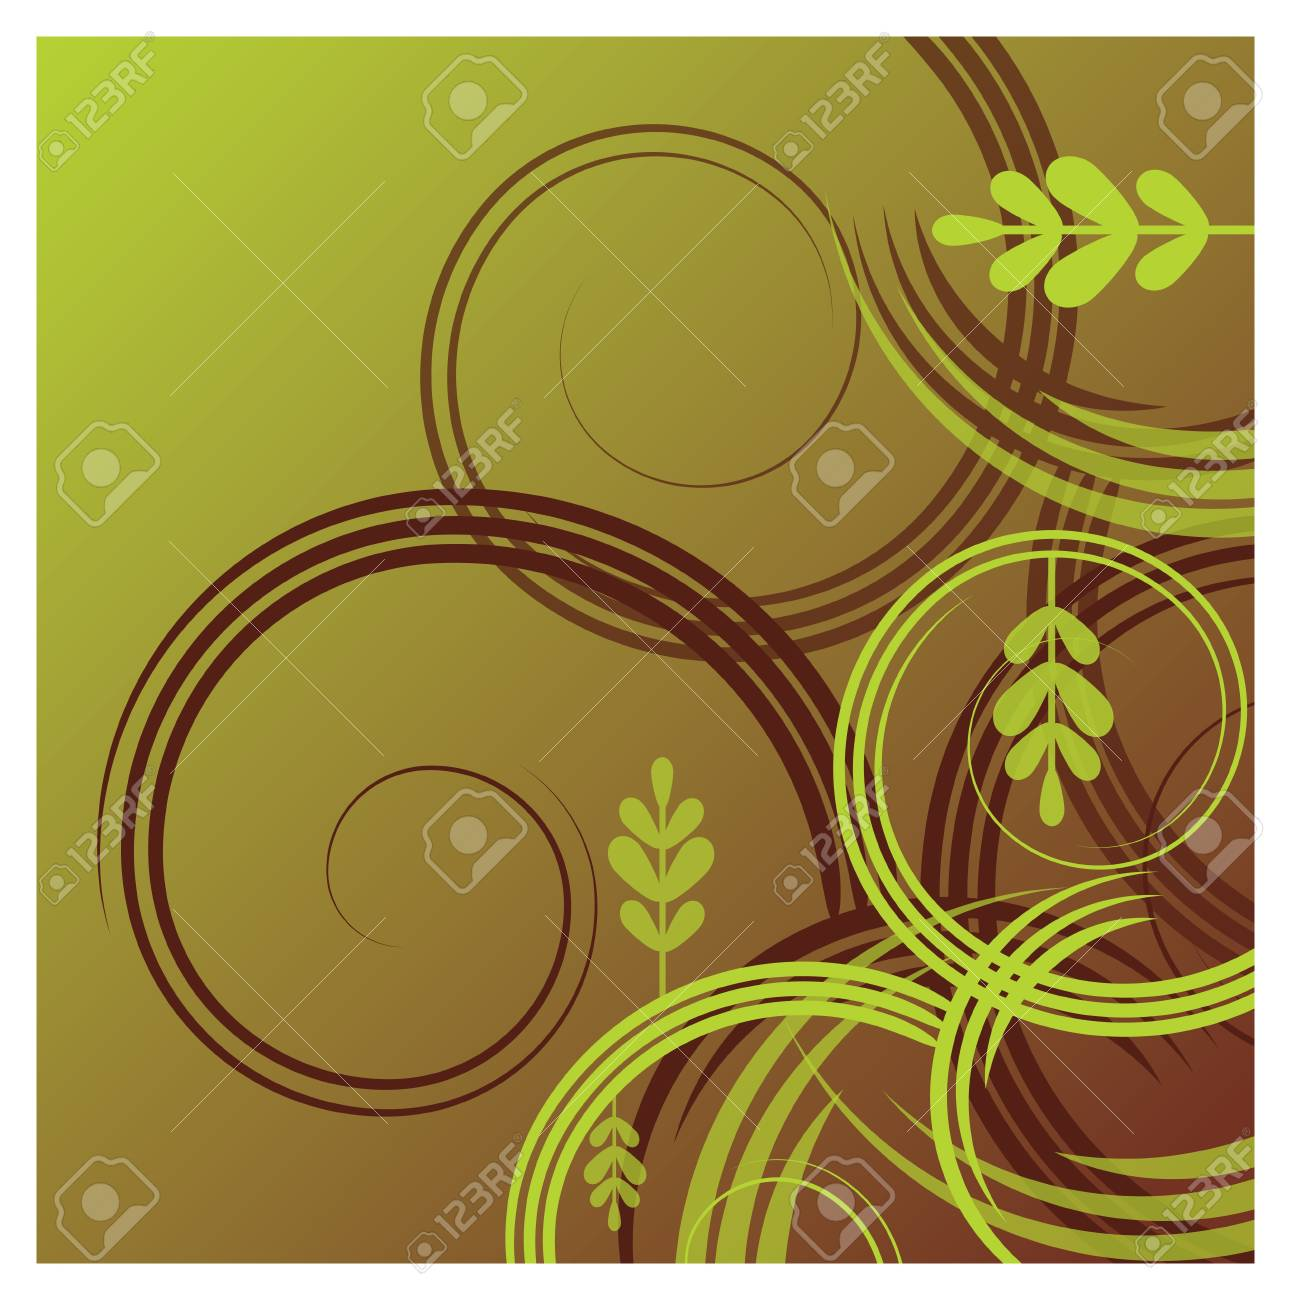 A foliage themed abstract background Stock Vector - 18263607